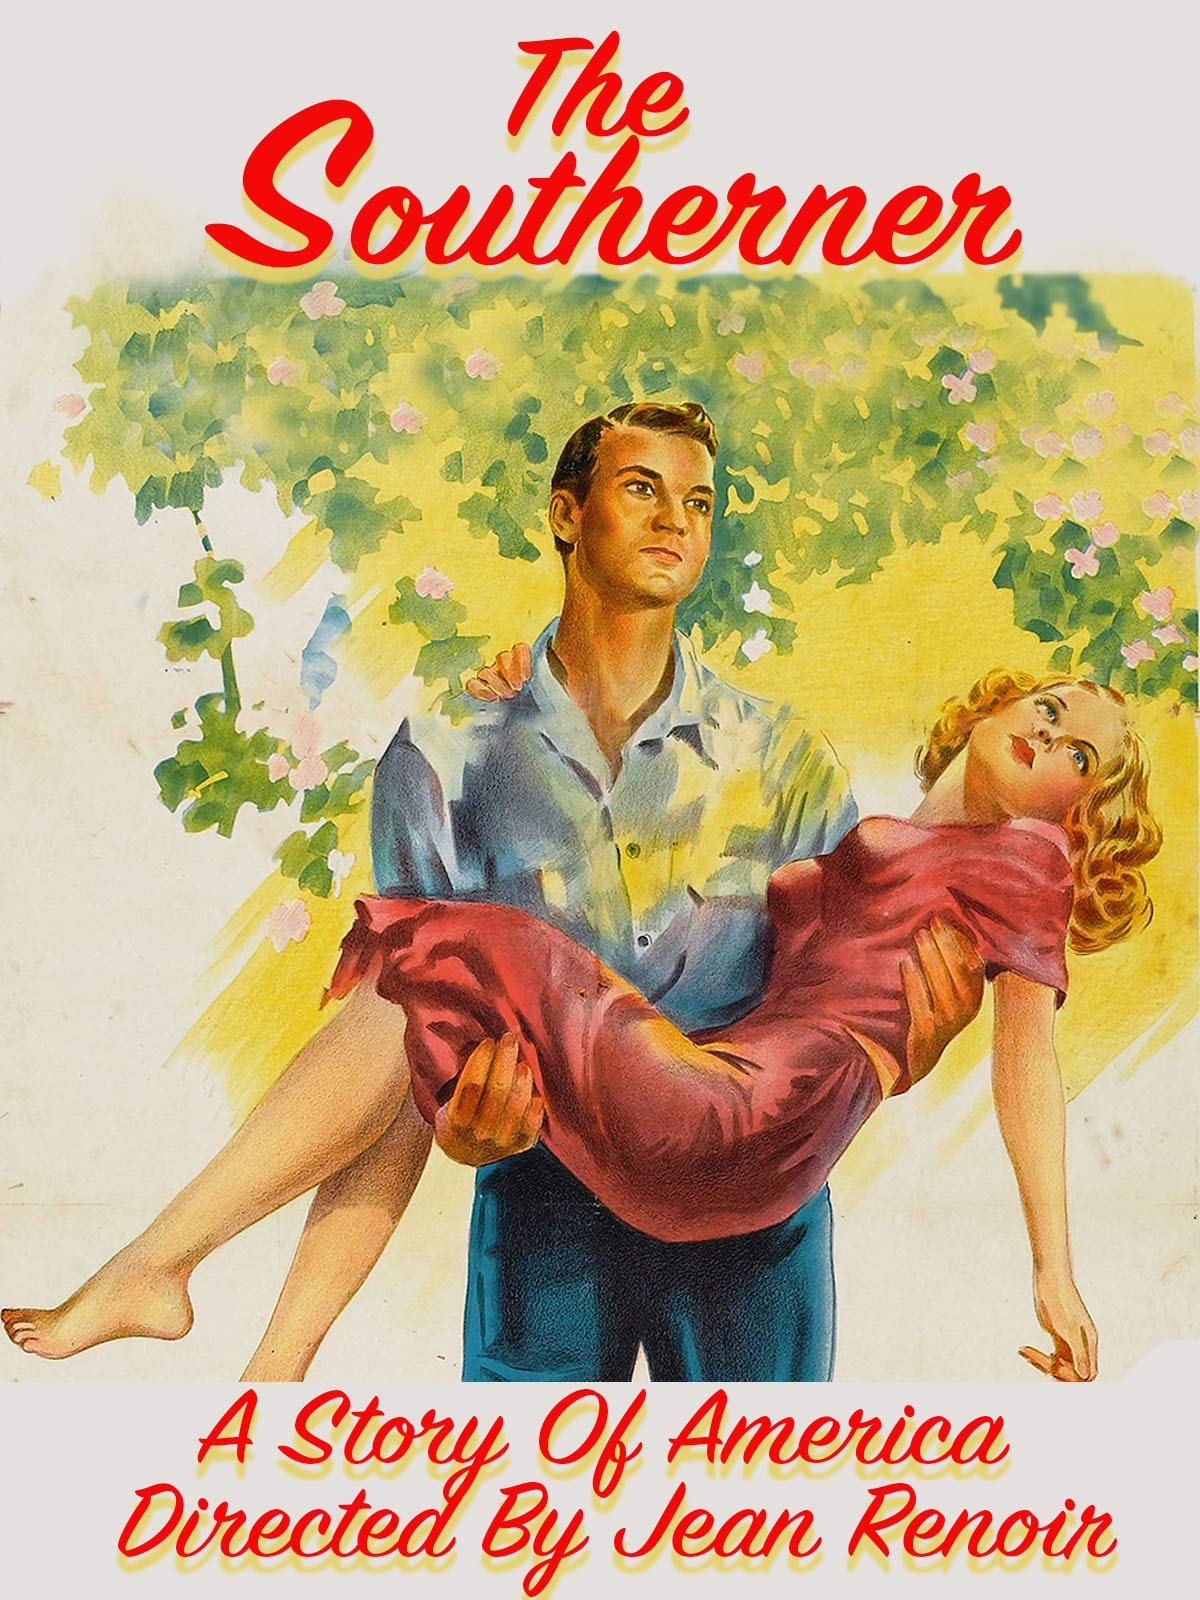 The Southerner - A Story of America, Directed By Jean Renoir on Amazon Prime Video UK